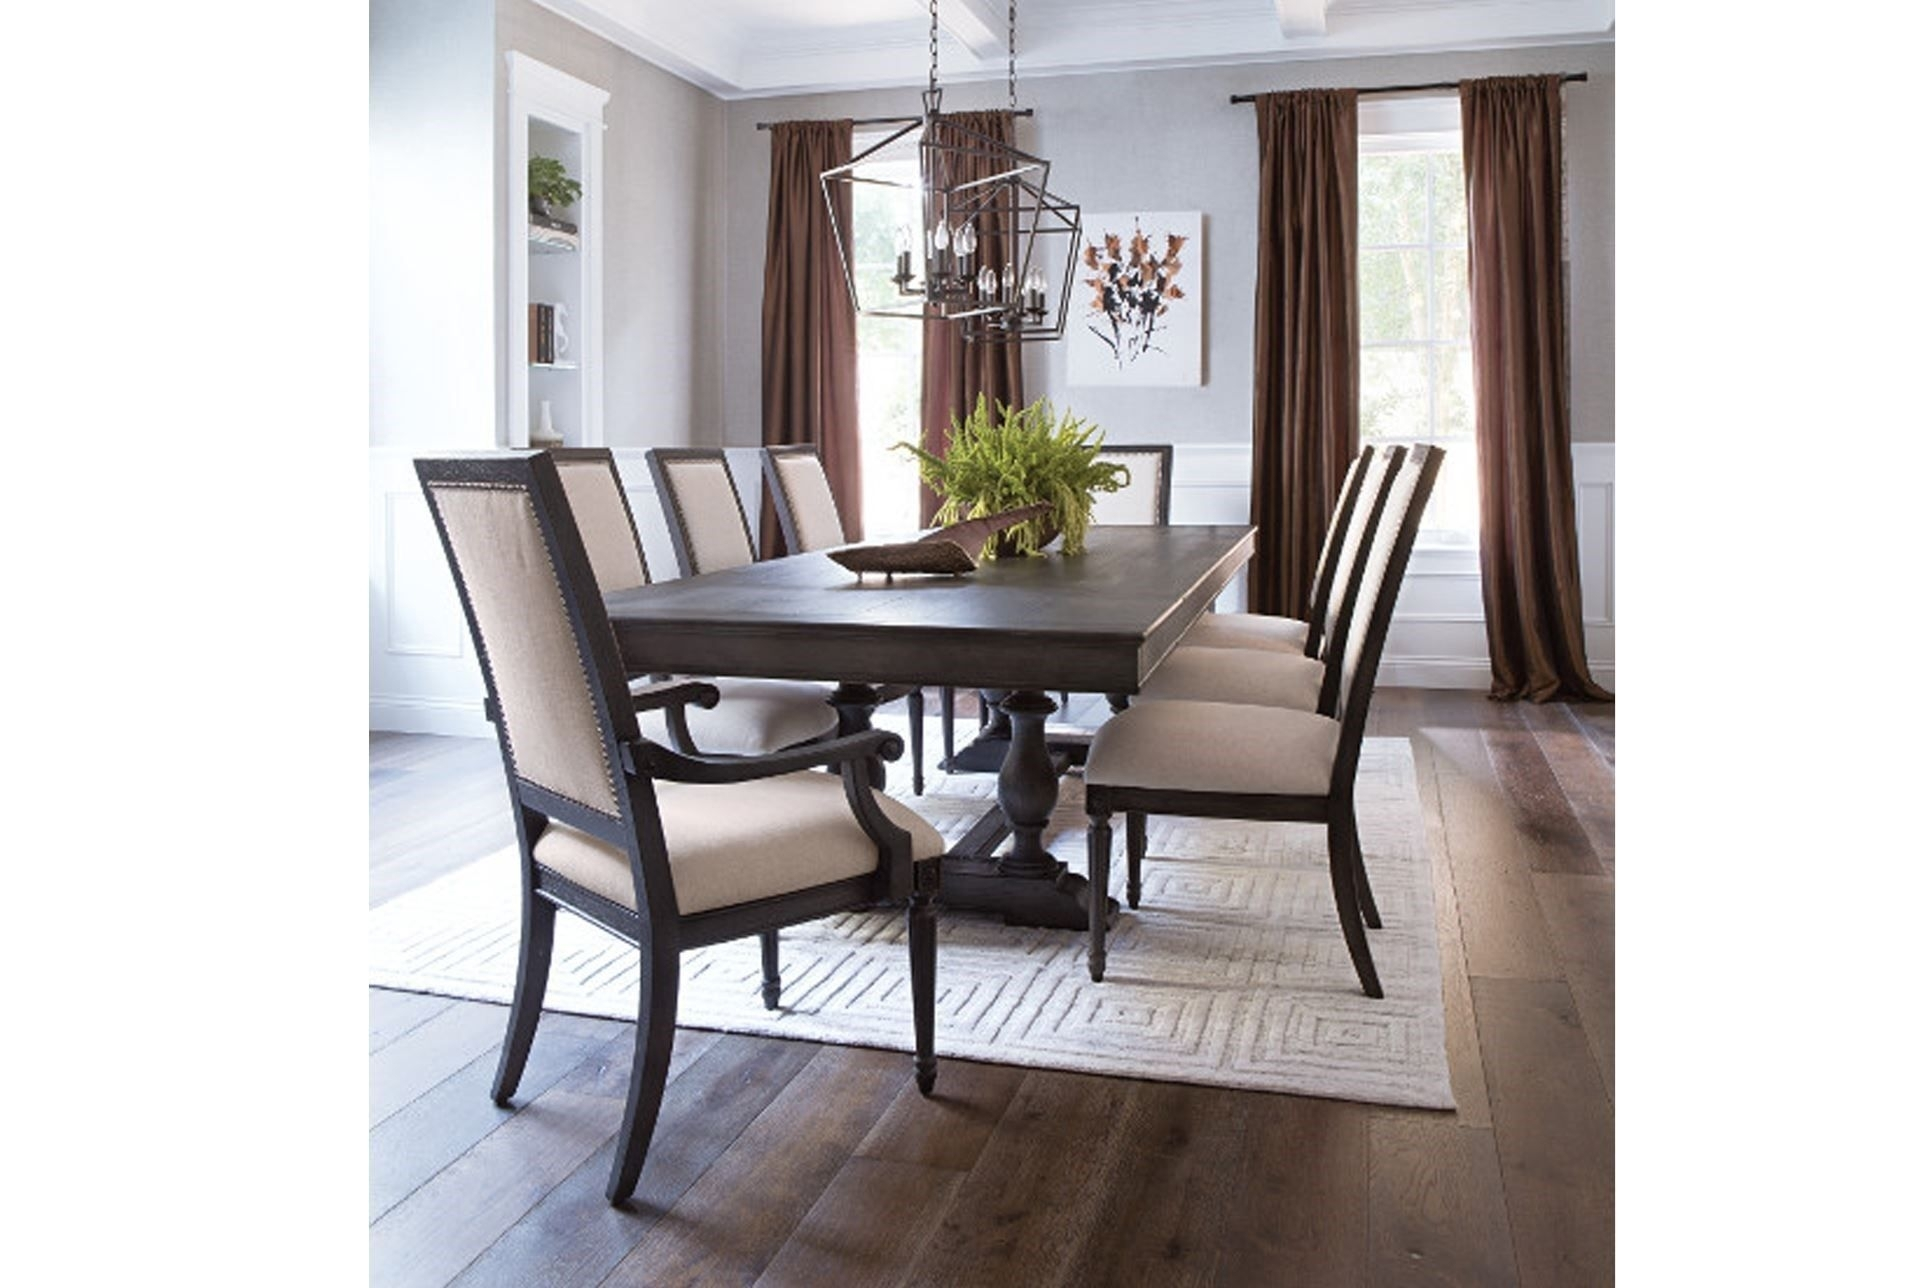 Chapleau 9 Piece Extension Dining Set | Dining Room | Pinterest With Regard To 2018 Chapleau Ii 7 Piece Extension Dining Tables With Side Chairs (Photo 5 of 20)